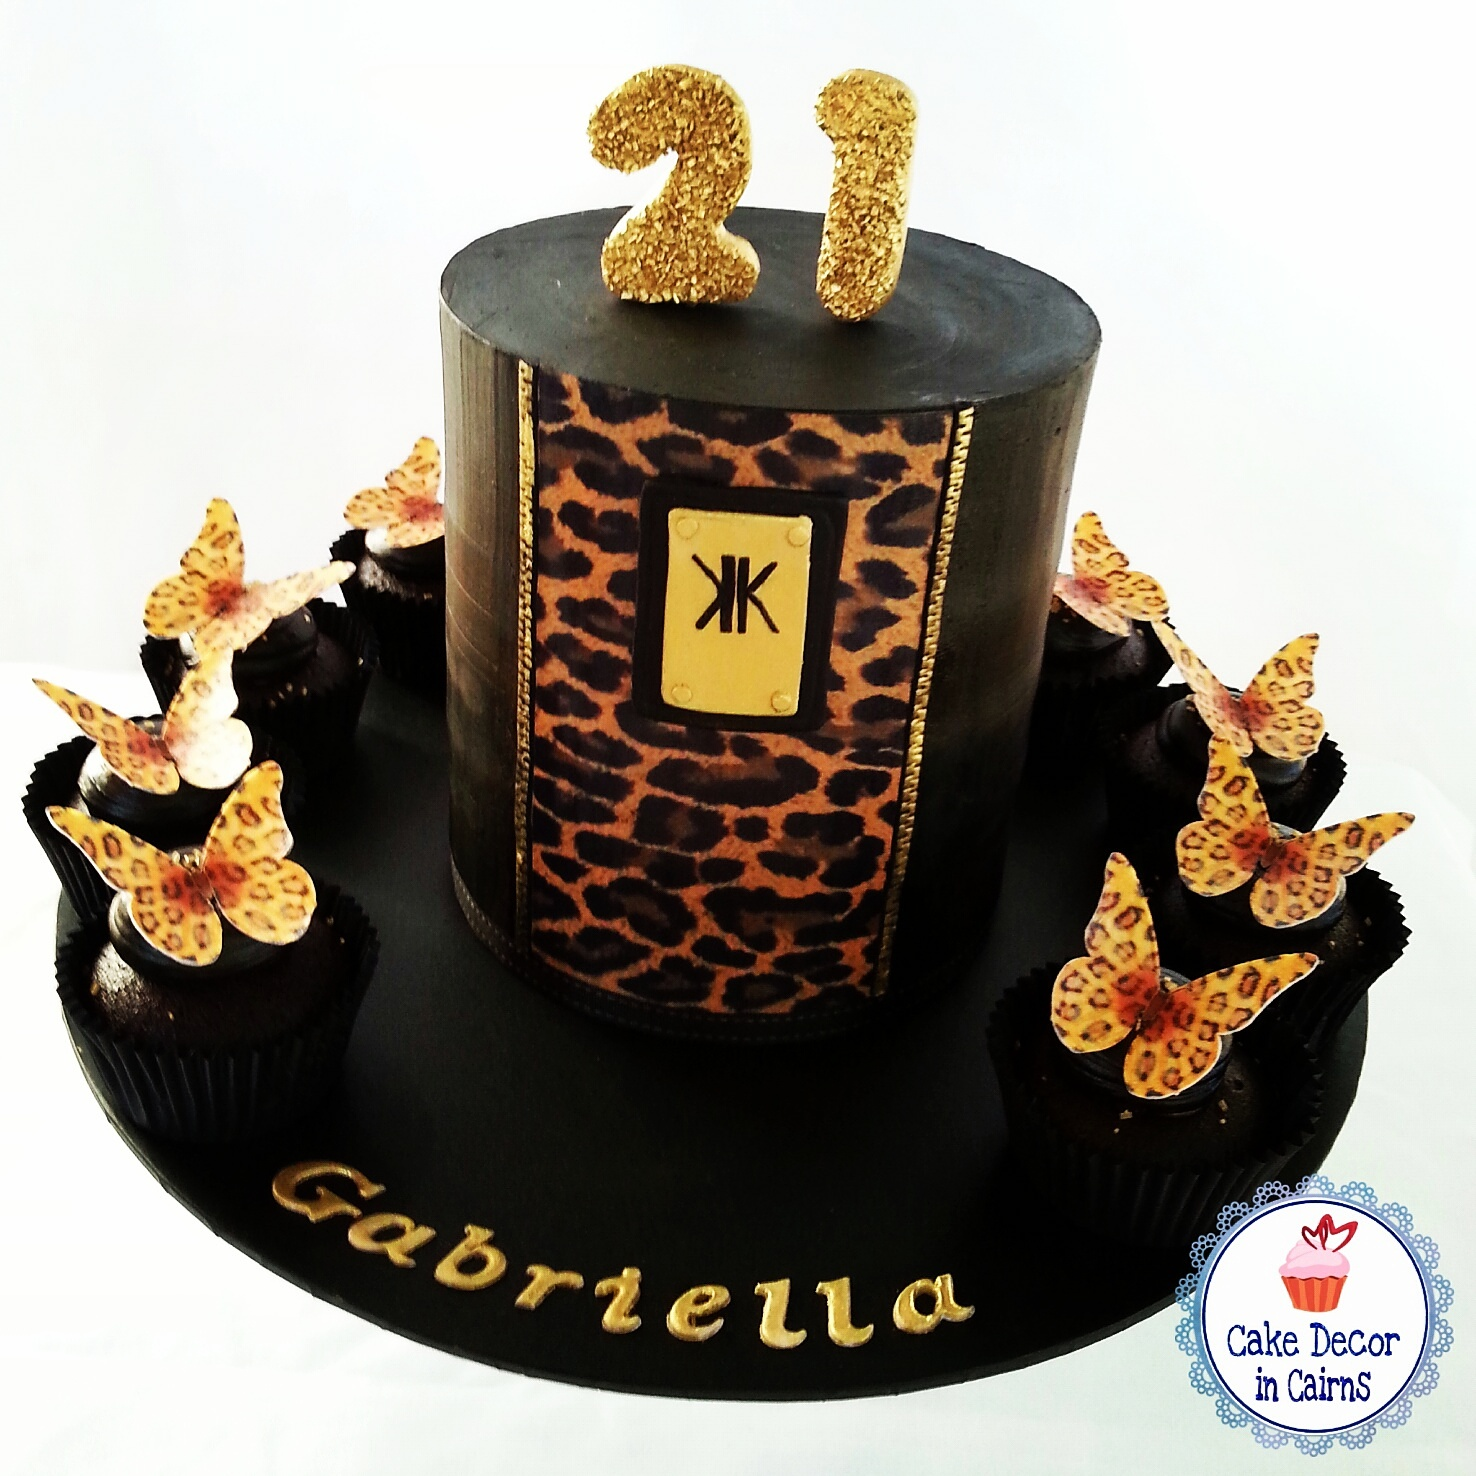 Kardashian Kollection Birthday Cake Leopard Print Black Dark chocolate ganache Edible leopard print butterflies